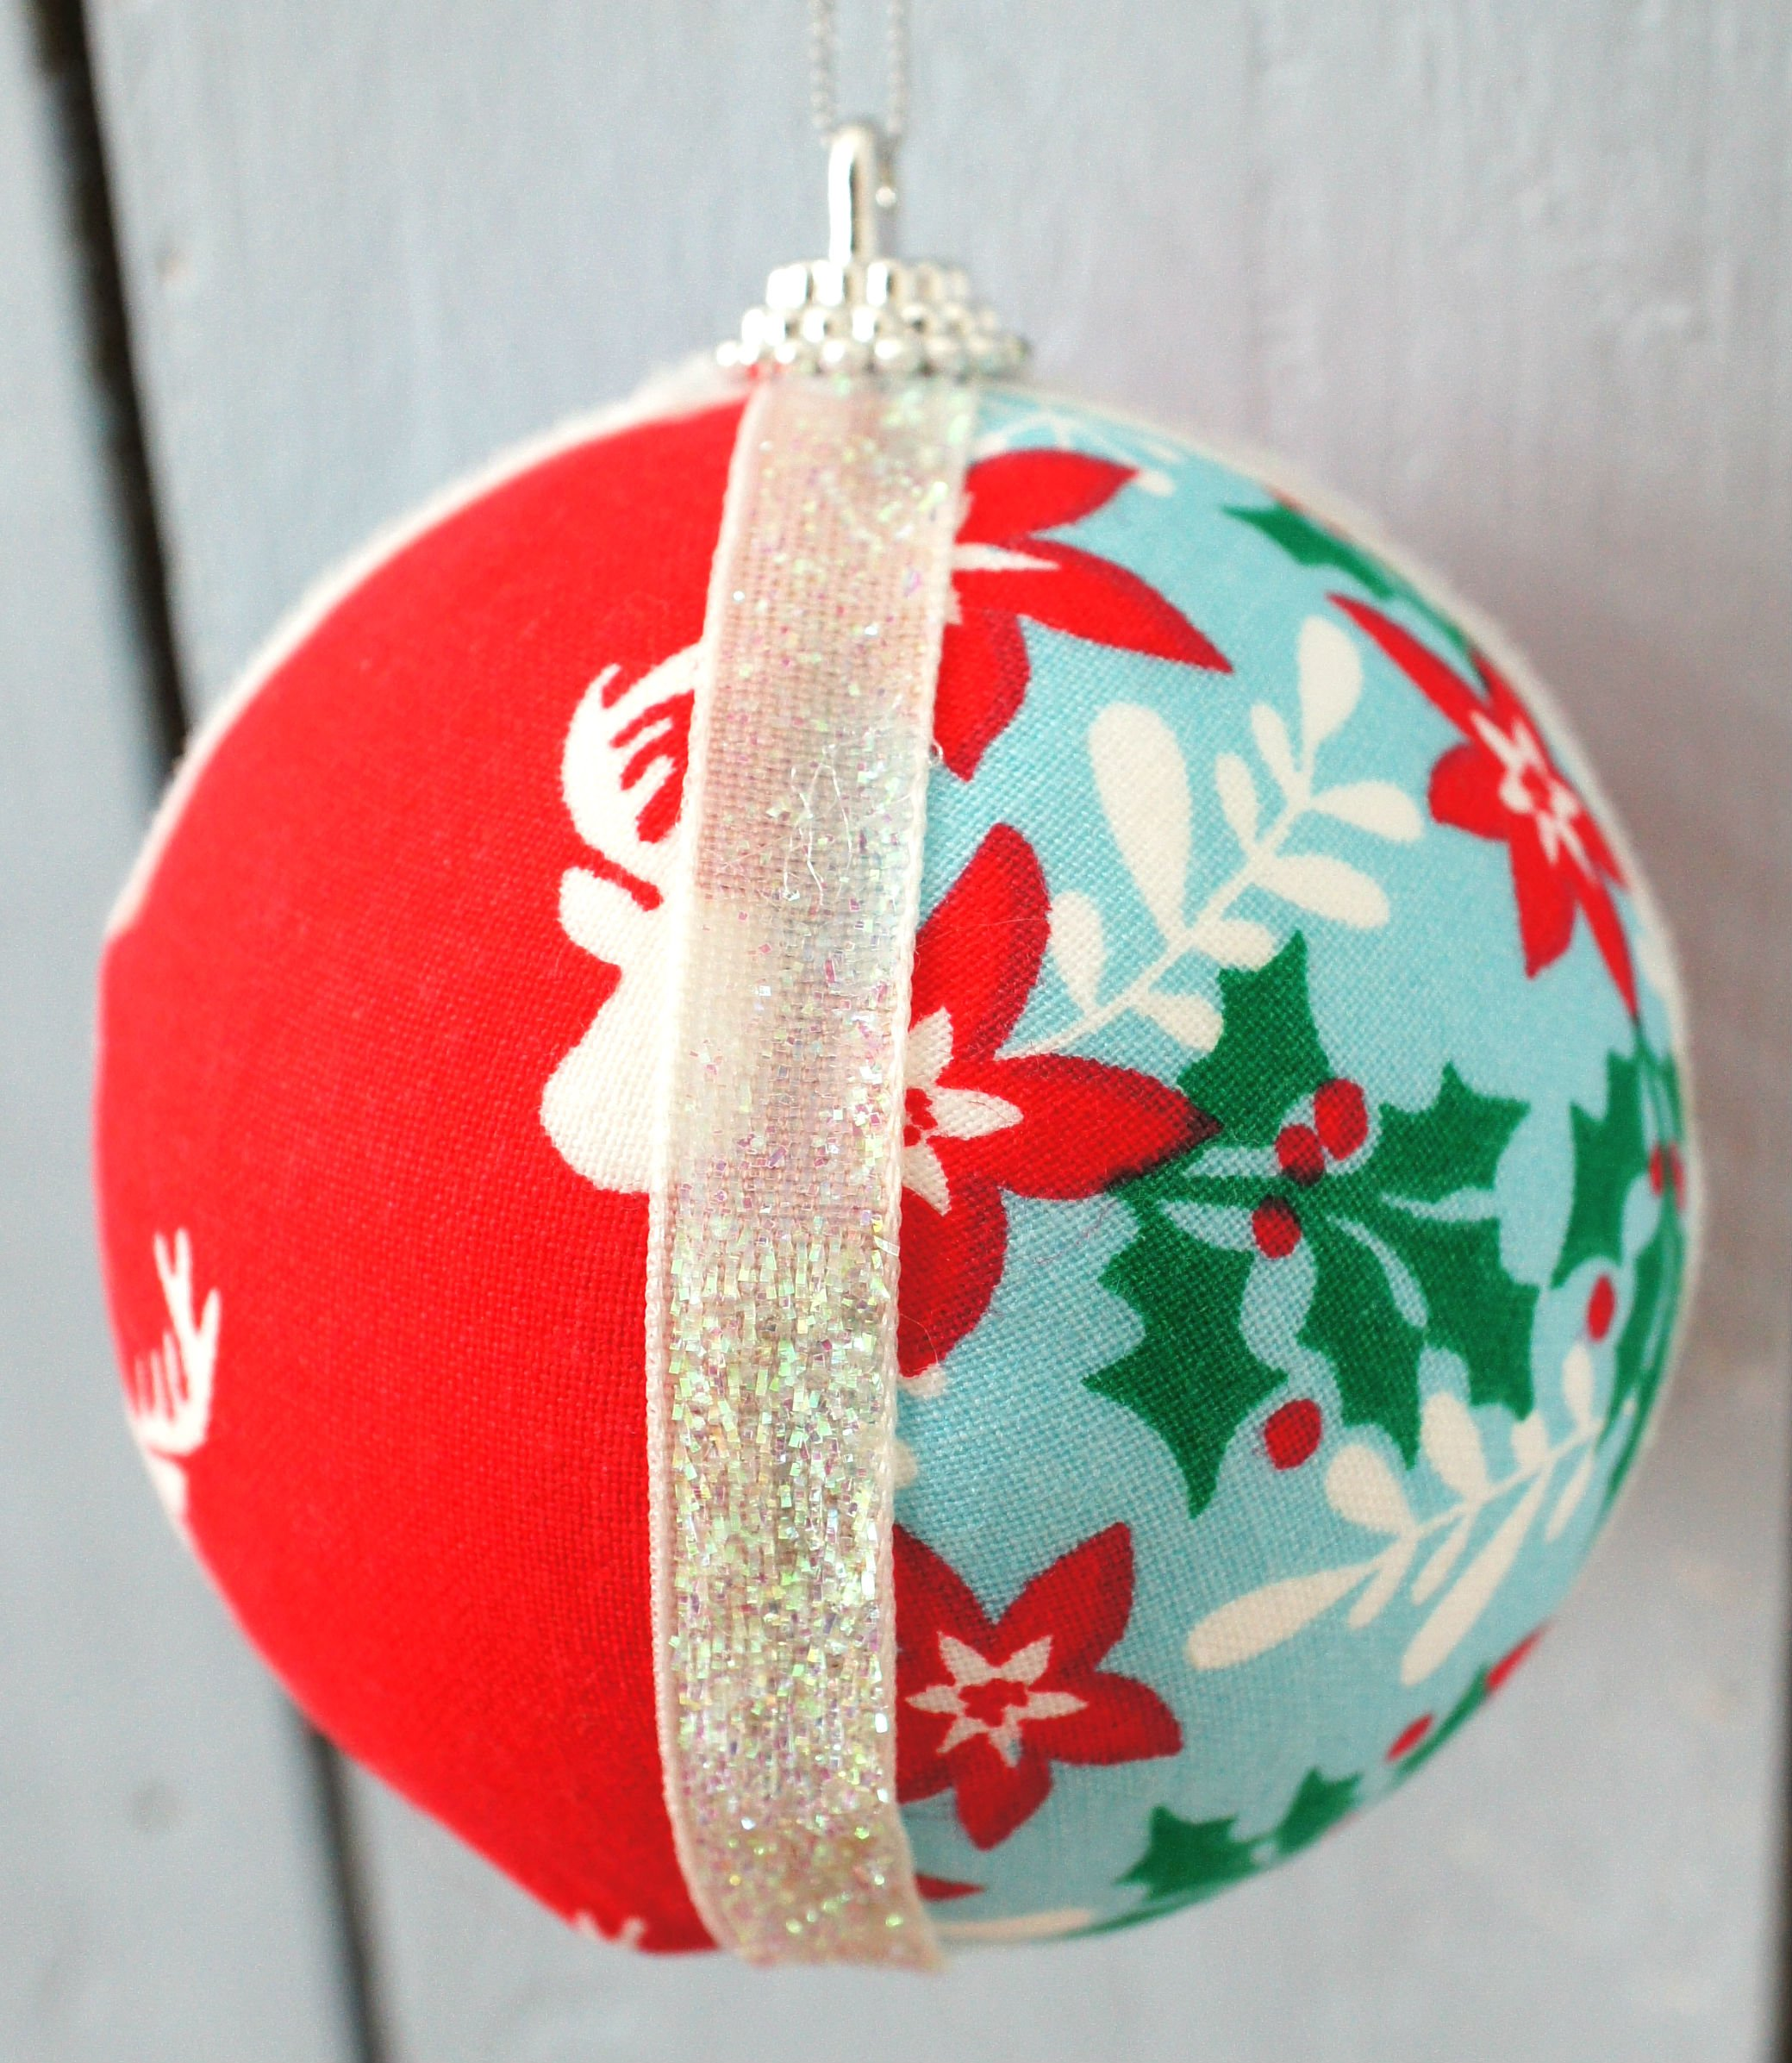 Xmas Fabric Sphere Ornament completed